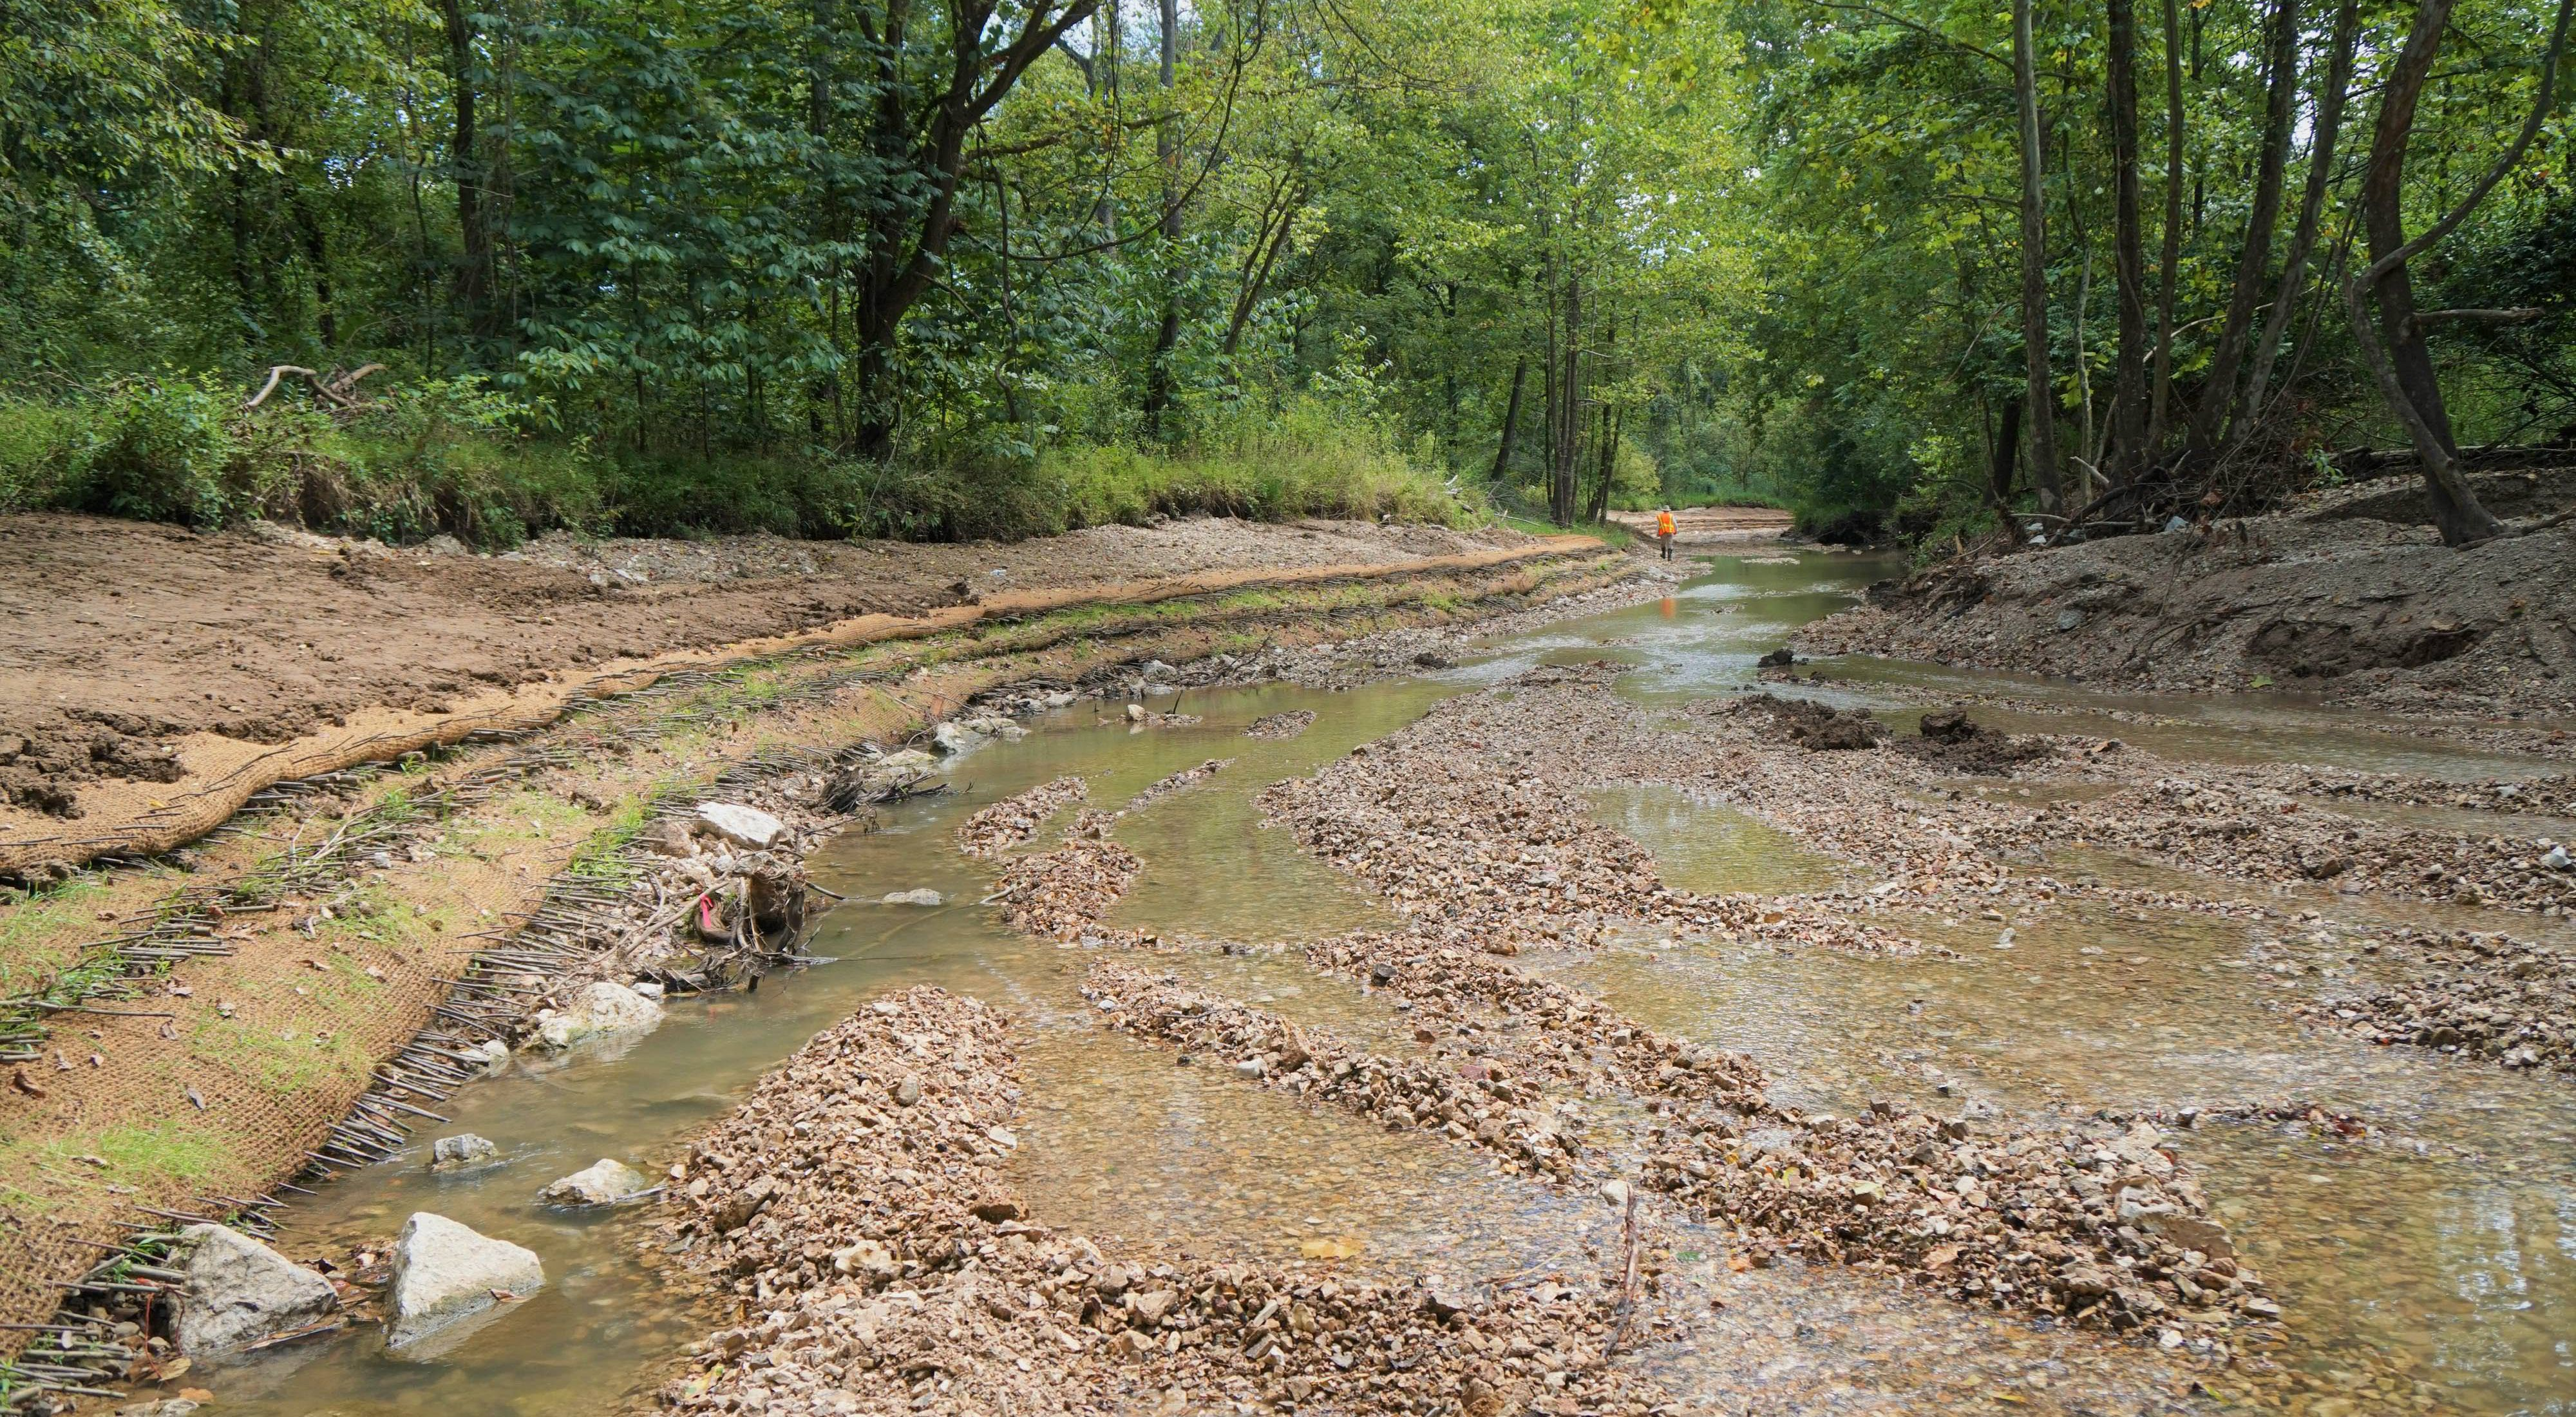 Newly constructed stream bank along Kiefer Creek in Castlewood State Park.